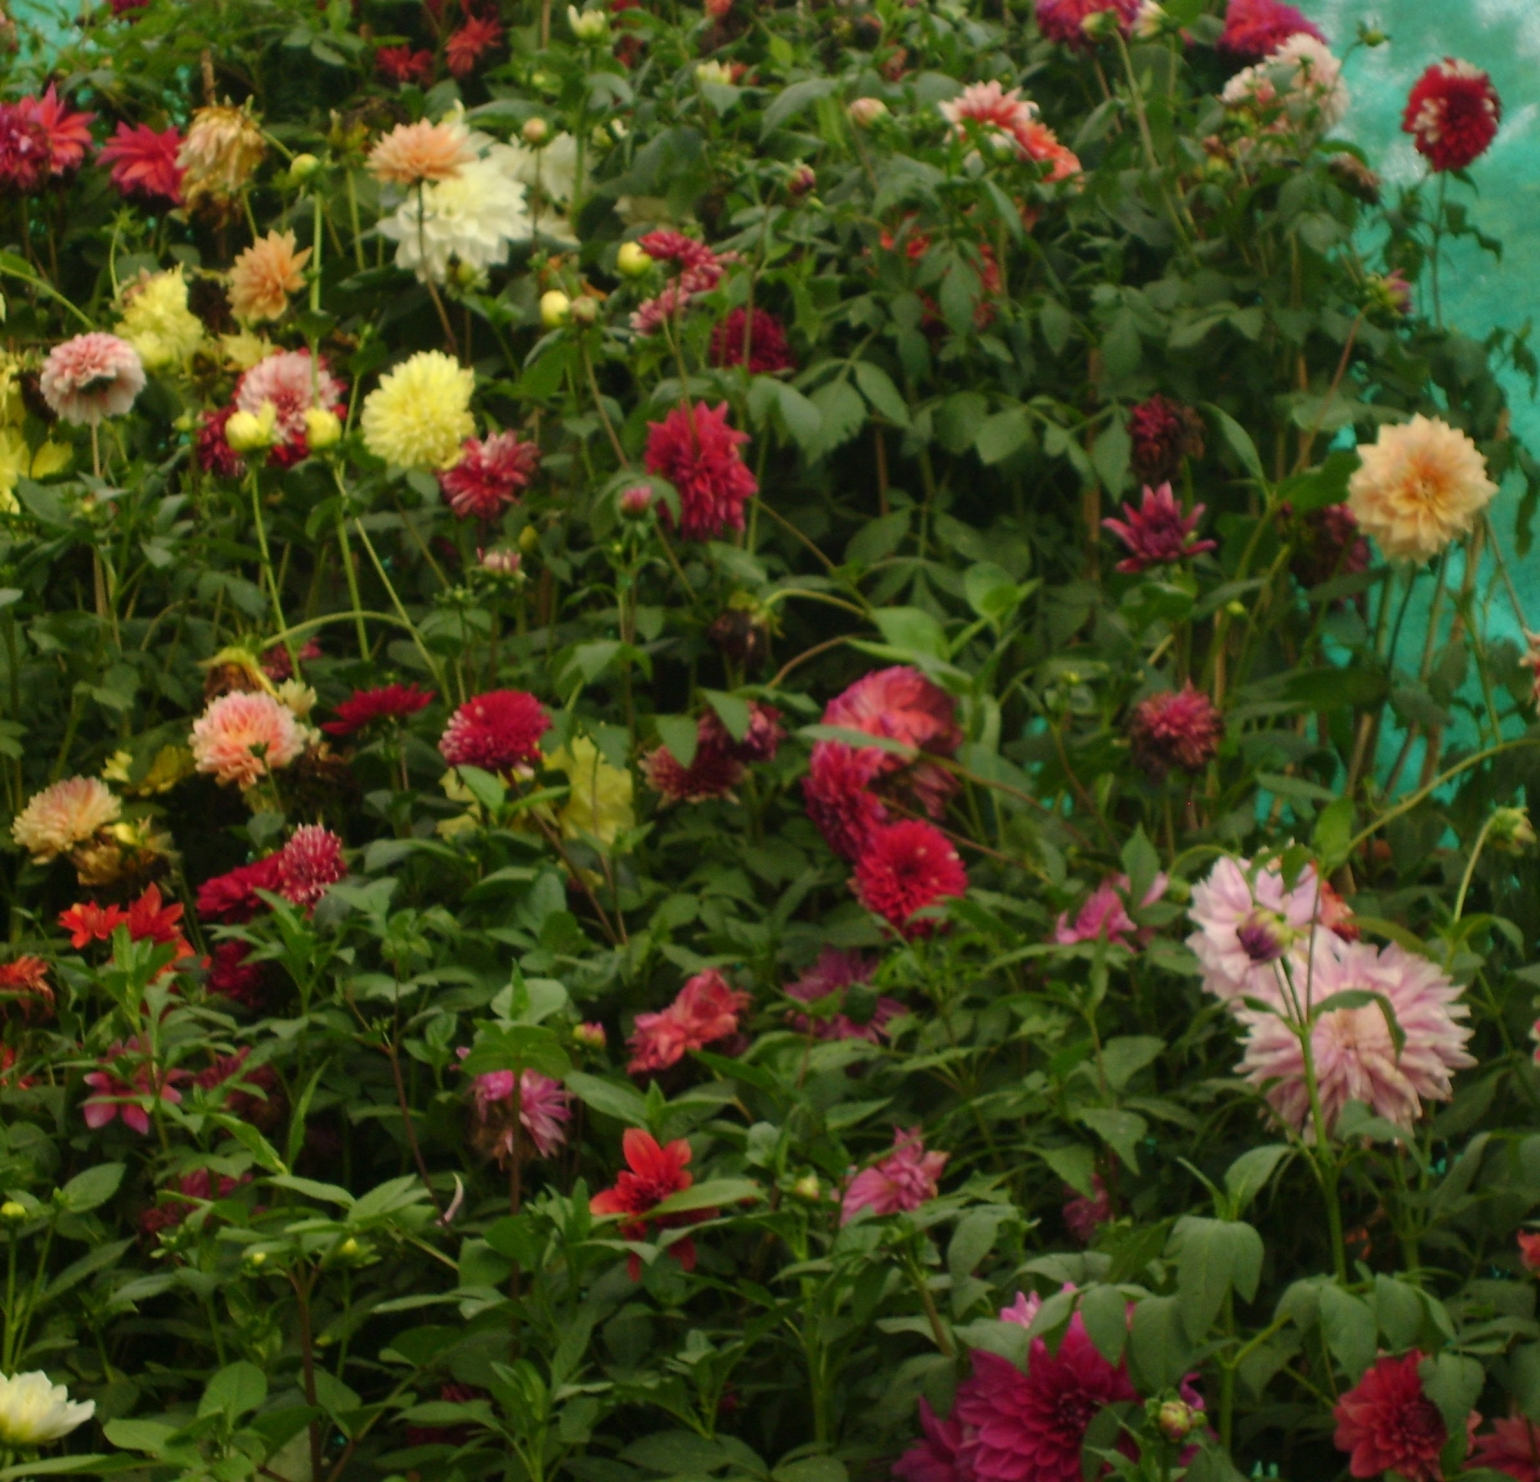 Birthday Bash - Happy Birthday to dear Grandfather - A picture of dahlias